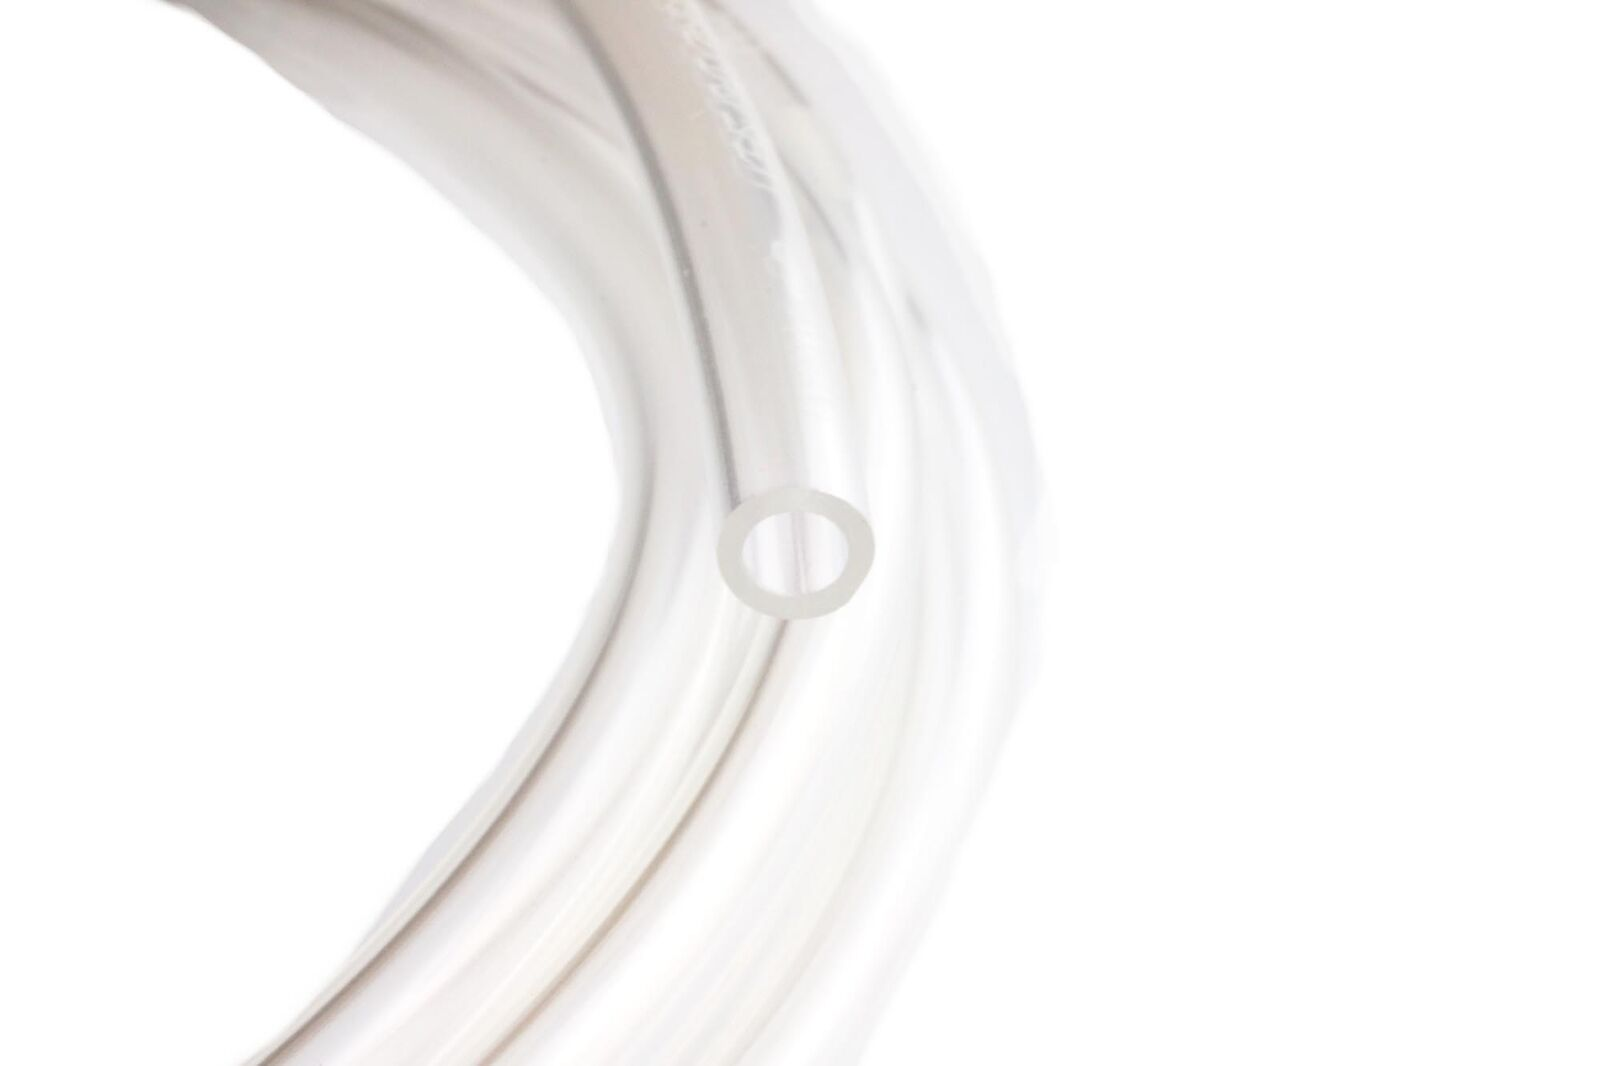 CO2 Resistant 4/6mm Polyurethane Tubing Hosing for Aquarium Systems